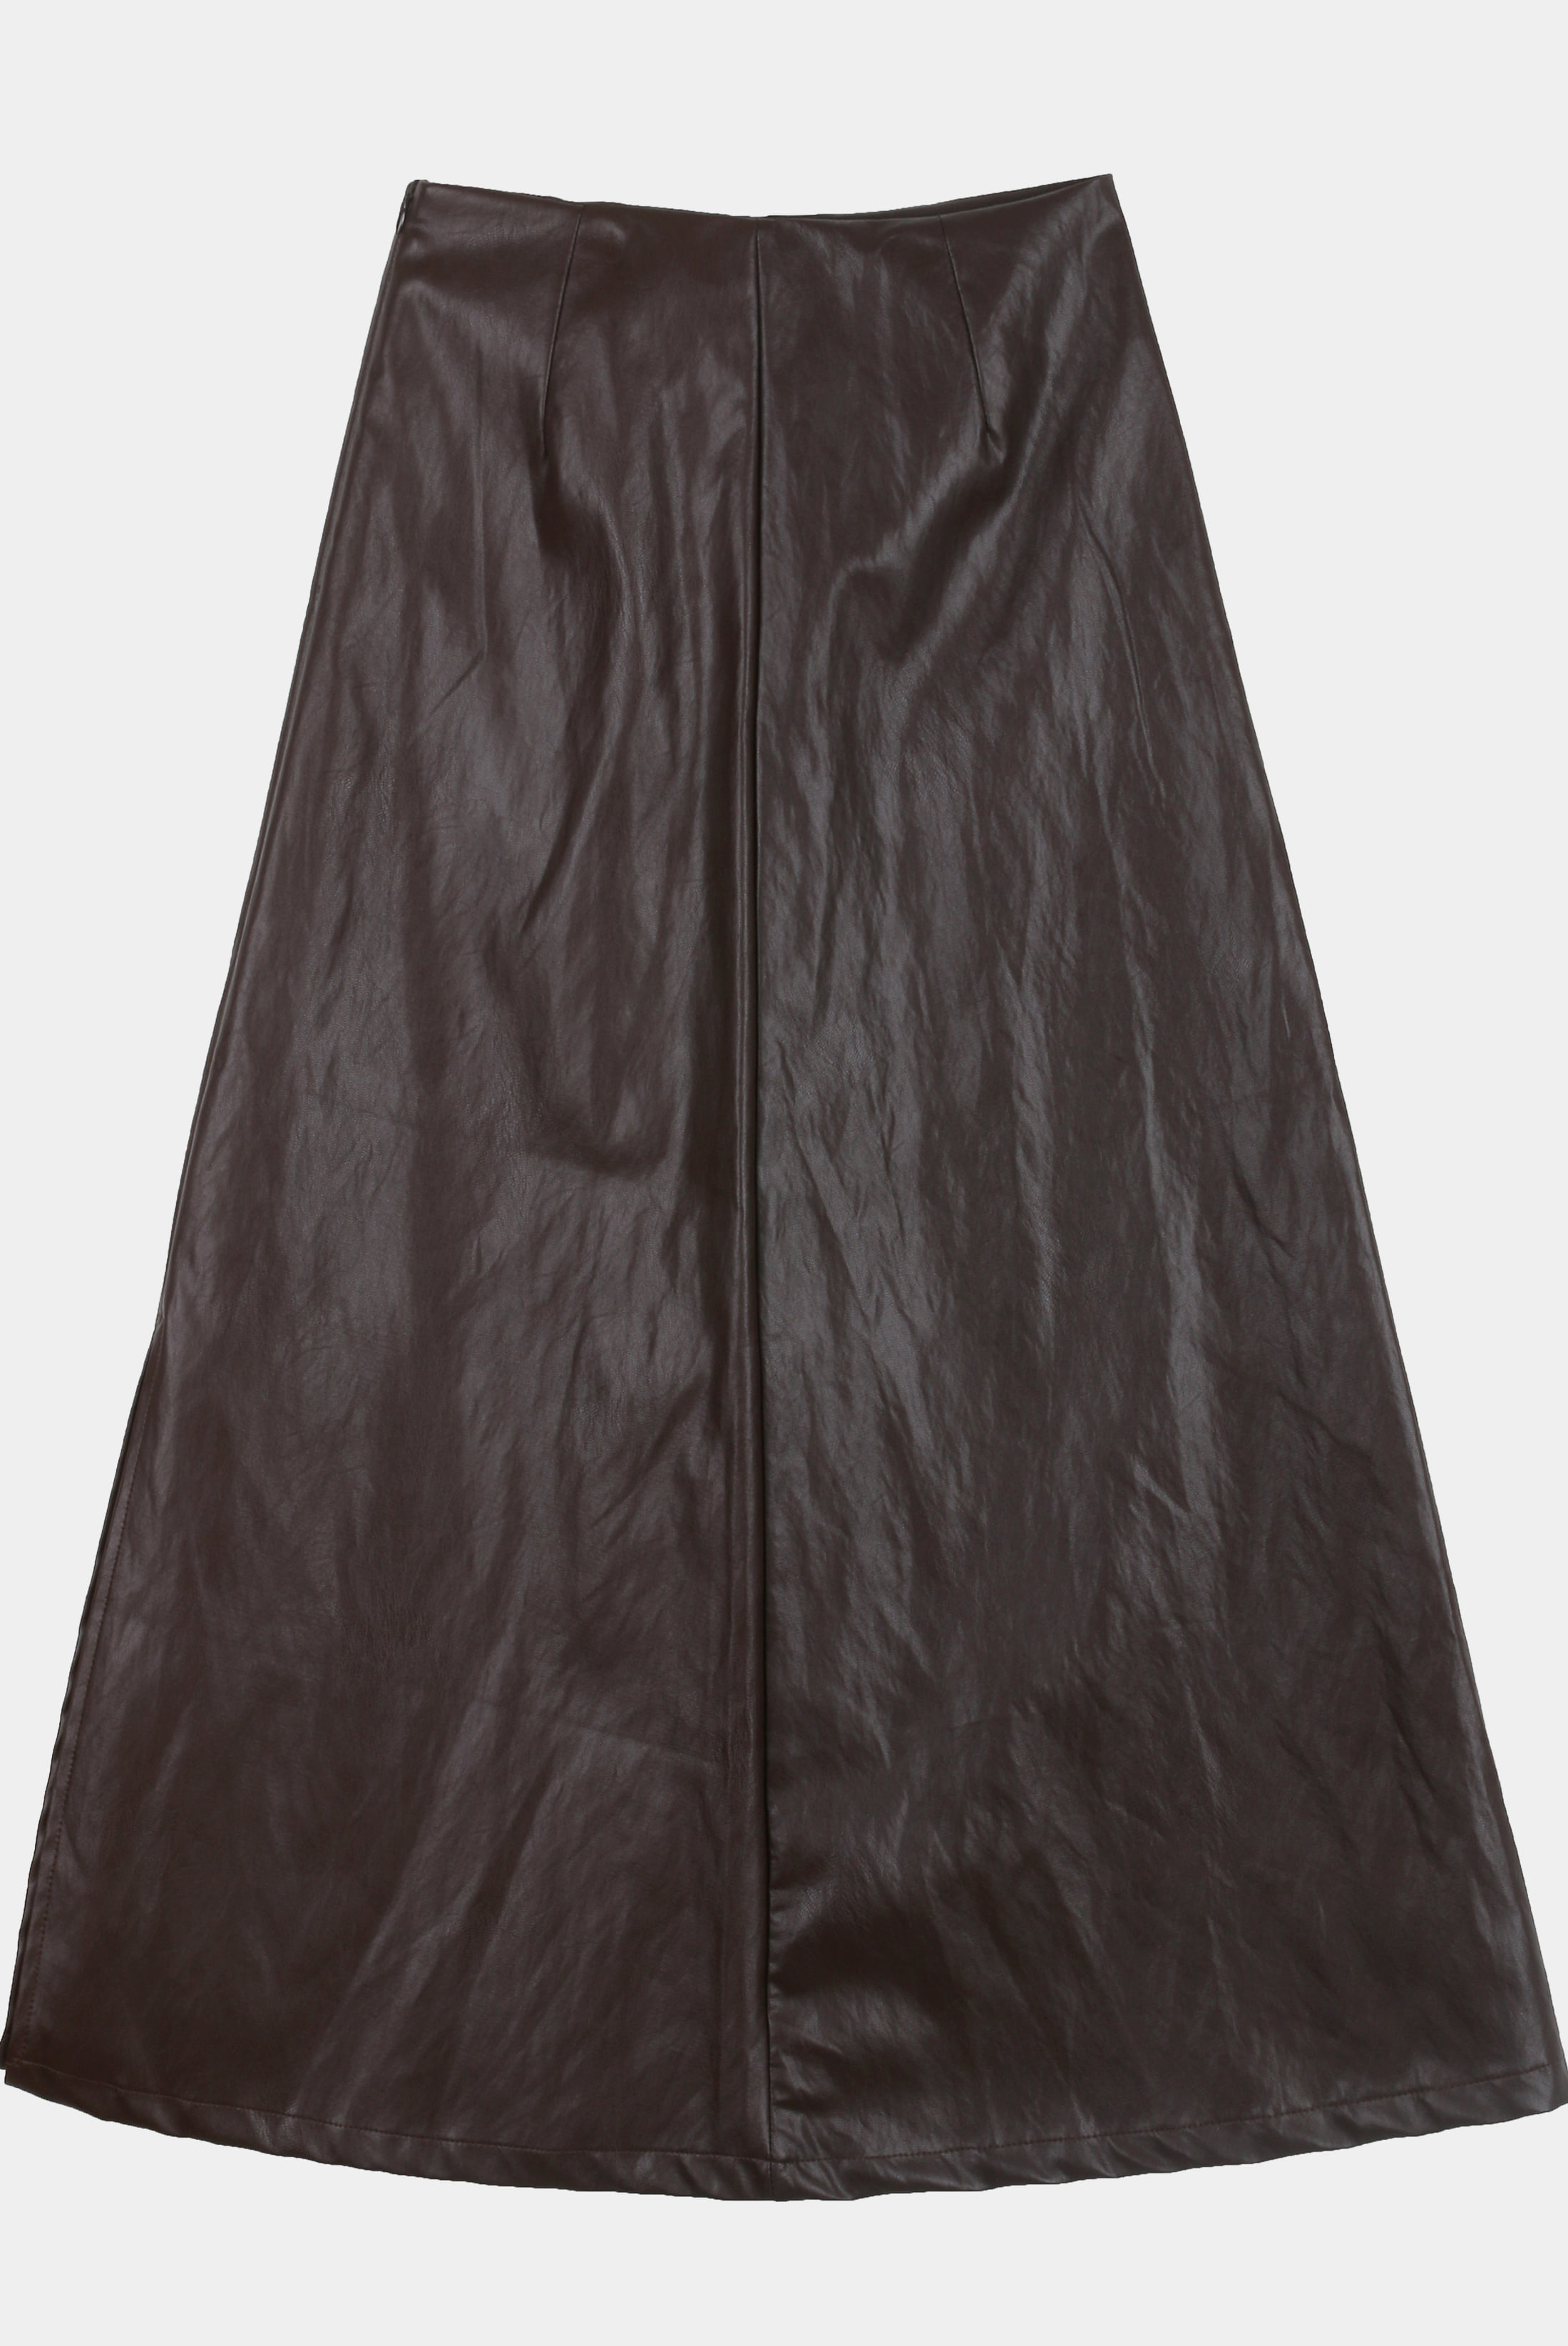 (W) Leather_Long A Skirt